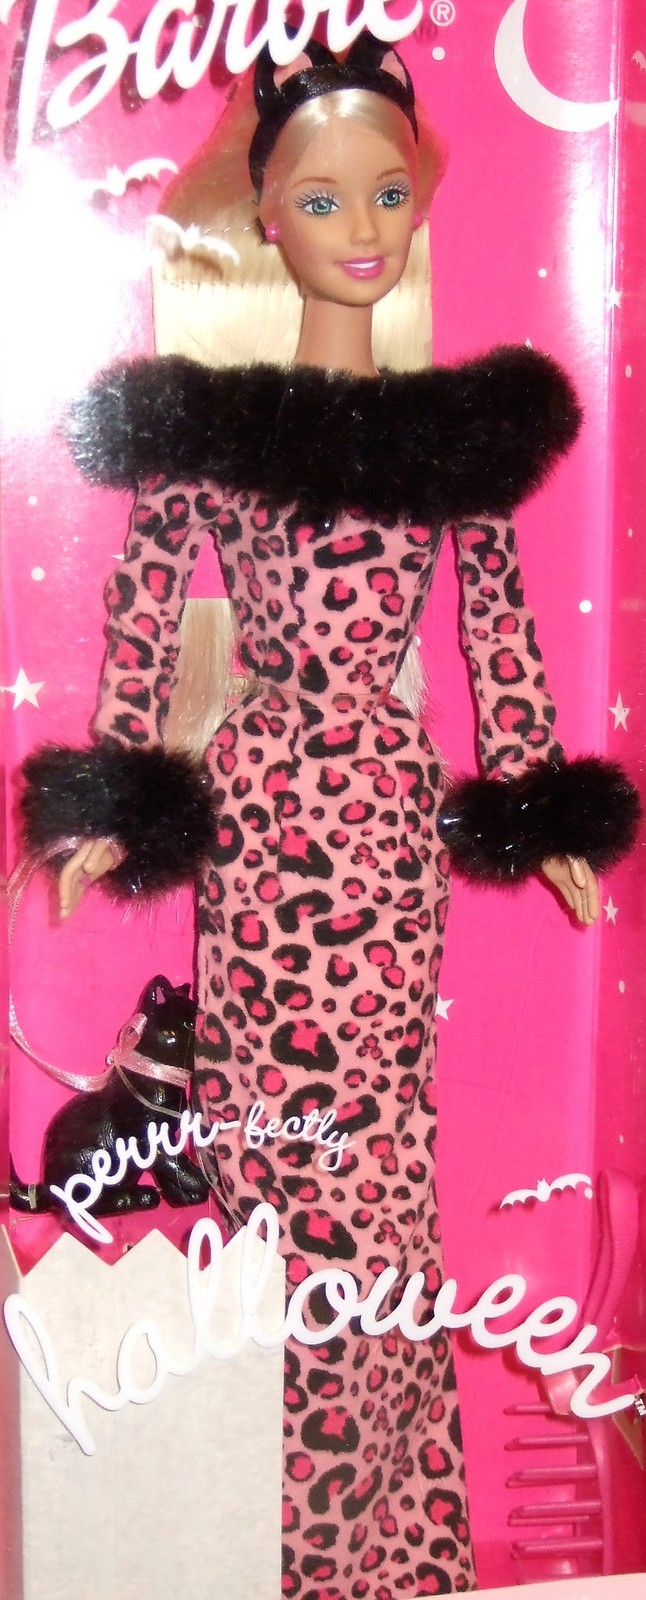 Barbie Doll - Perr-fectly Halloween (Target Special Edition)